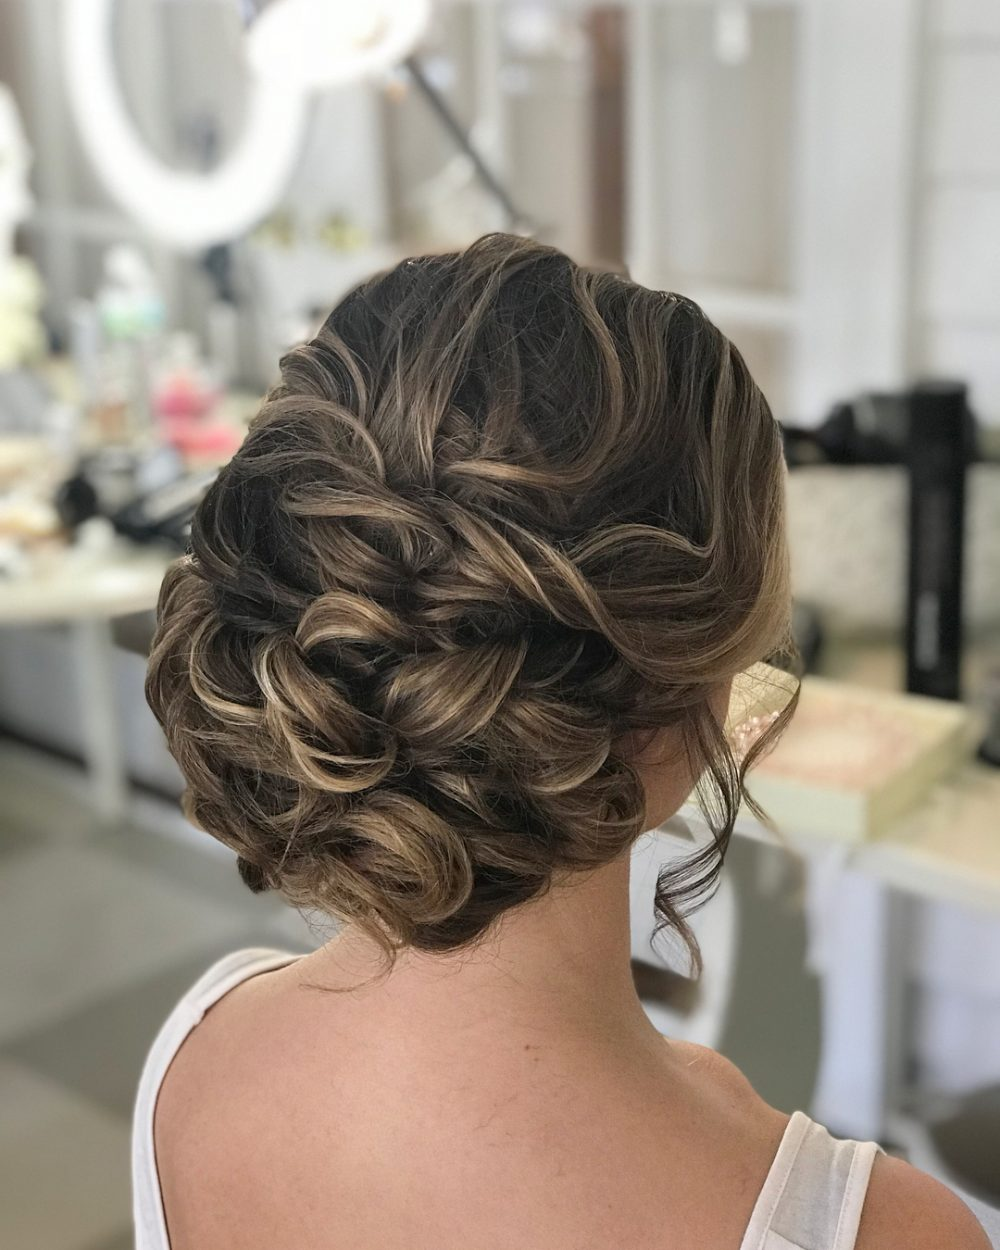 Updo Hairstyles For Wedding Guests: 17 Gorgeous Wedding Updos For Brides In 2019